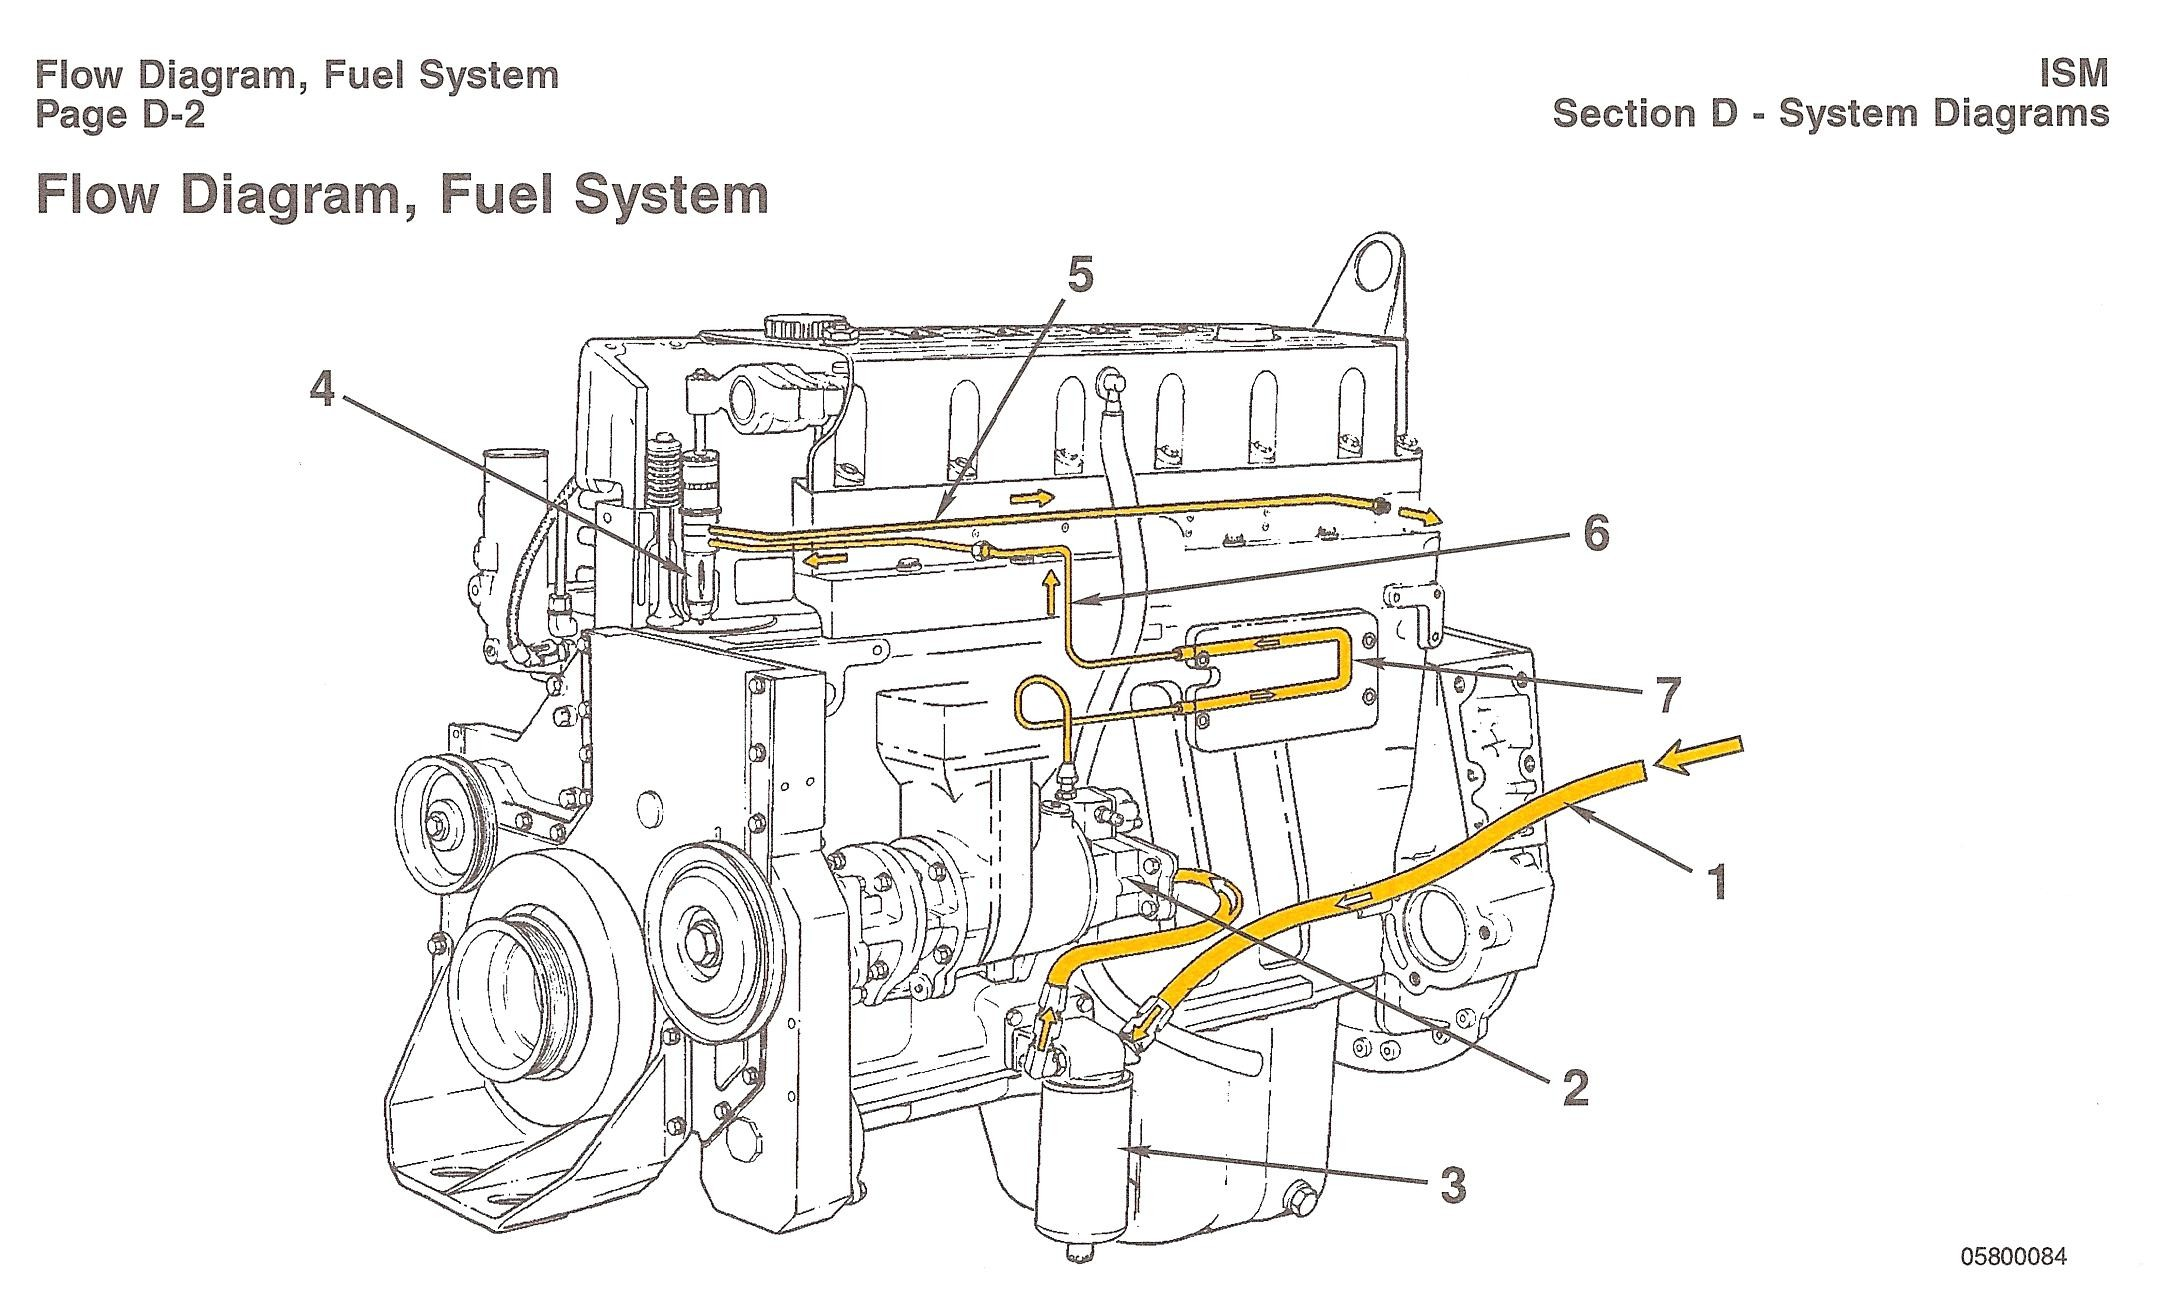 Cummins isx Engine Diagram Cummins isx Ecm Wiring Diagram Engine M11 – Fooddailyub Of Cummins isx Engine Diagram